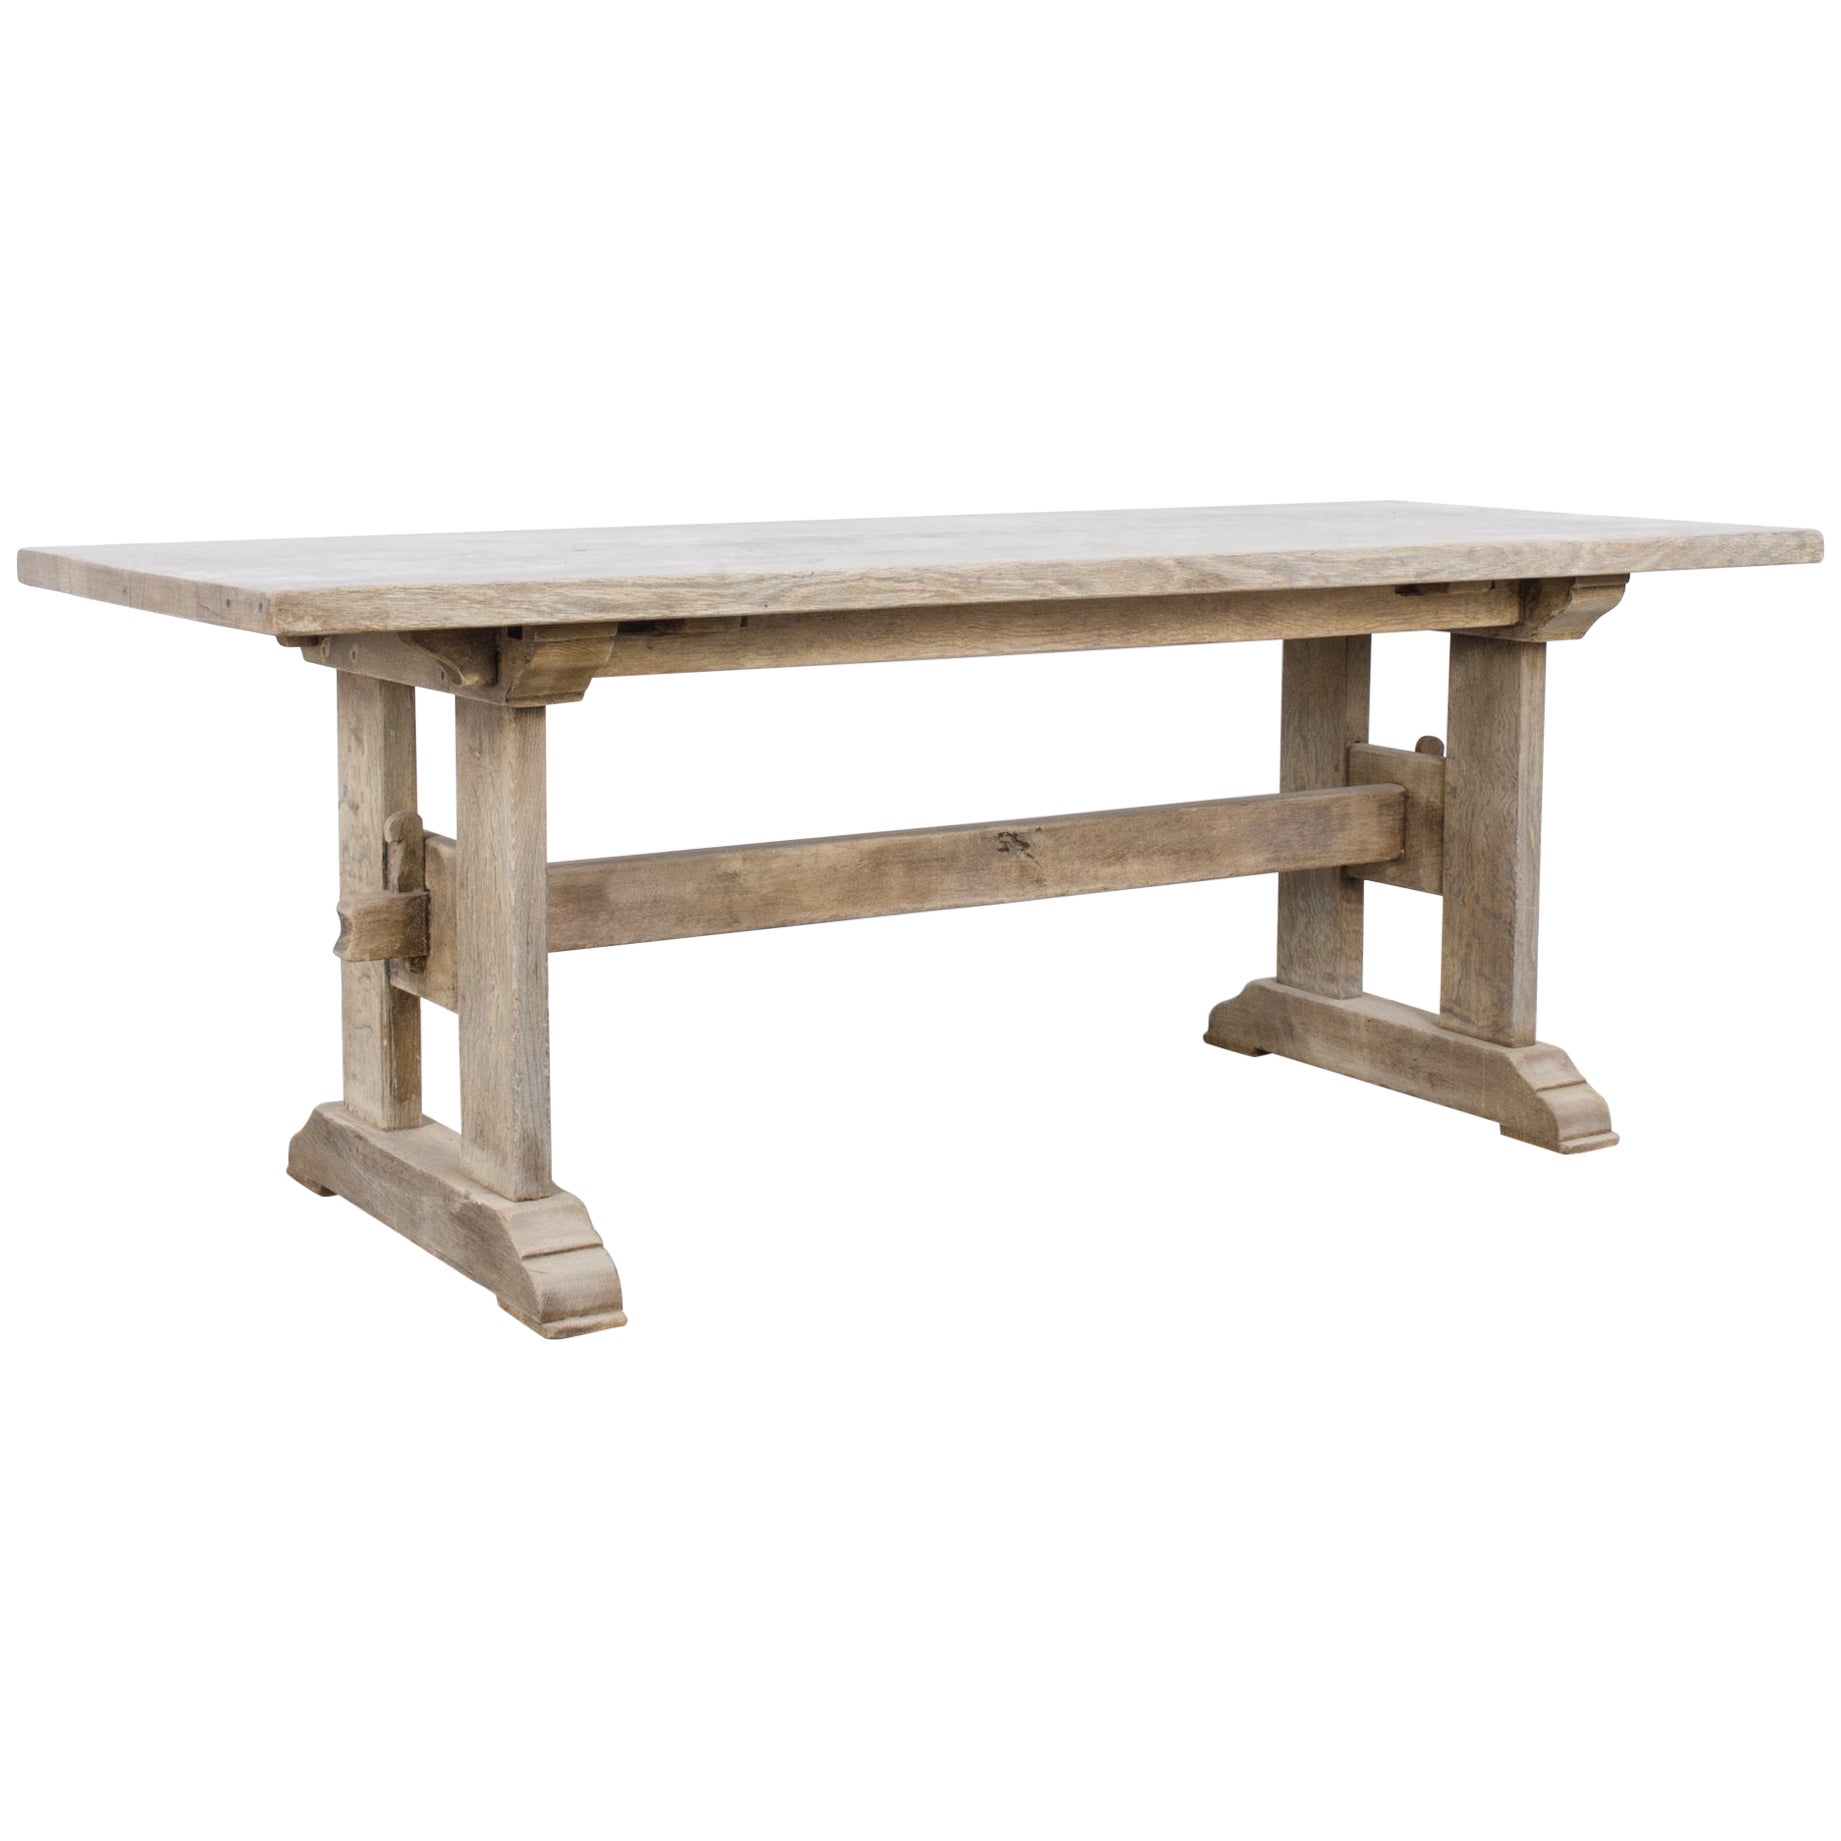 1960s Belgian Bleached Oak Trestle Dining Table